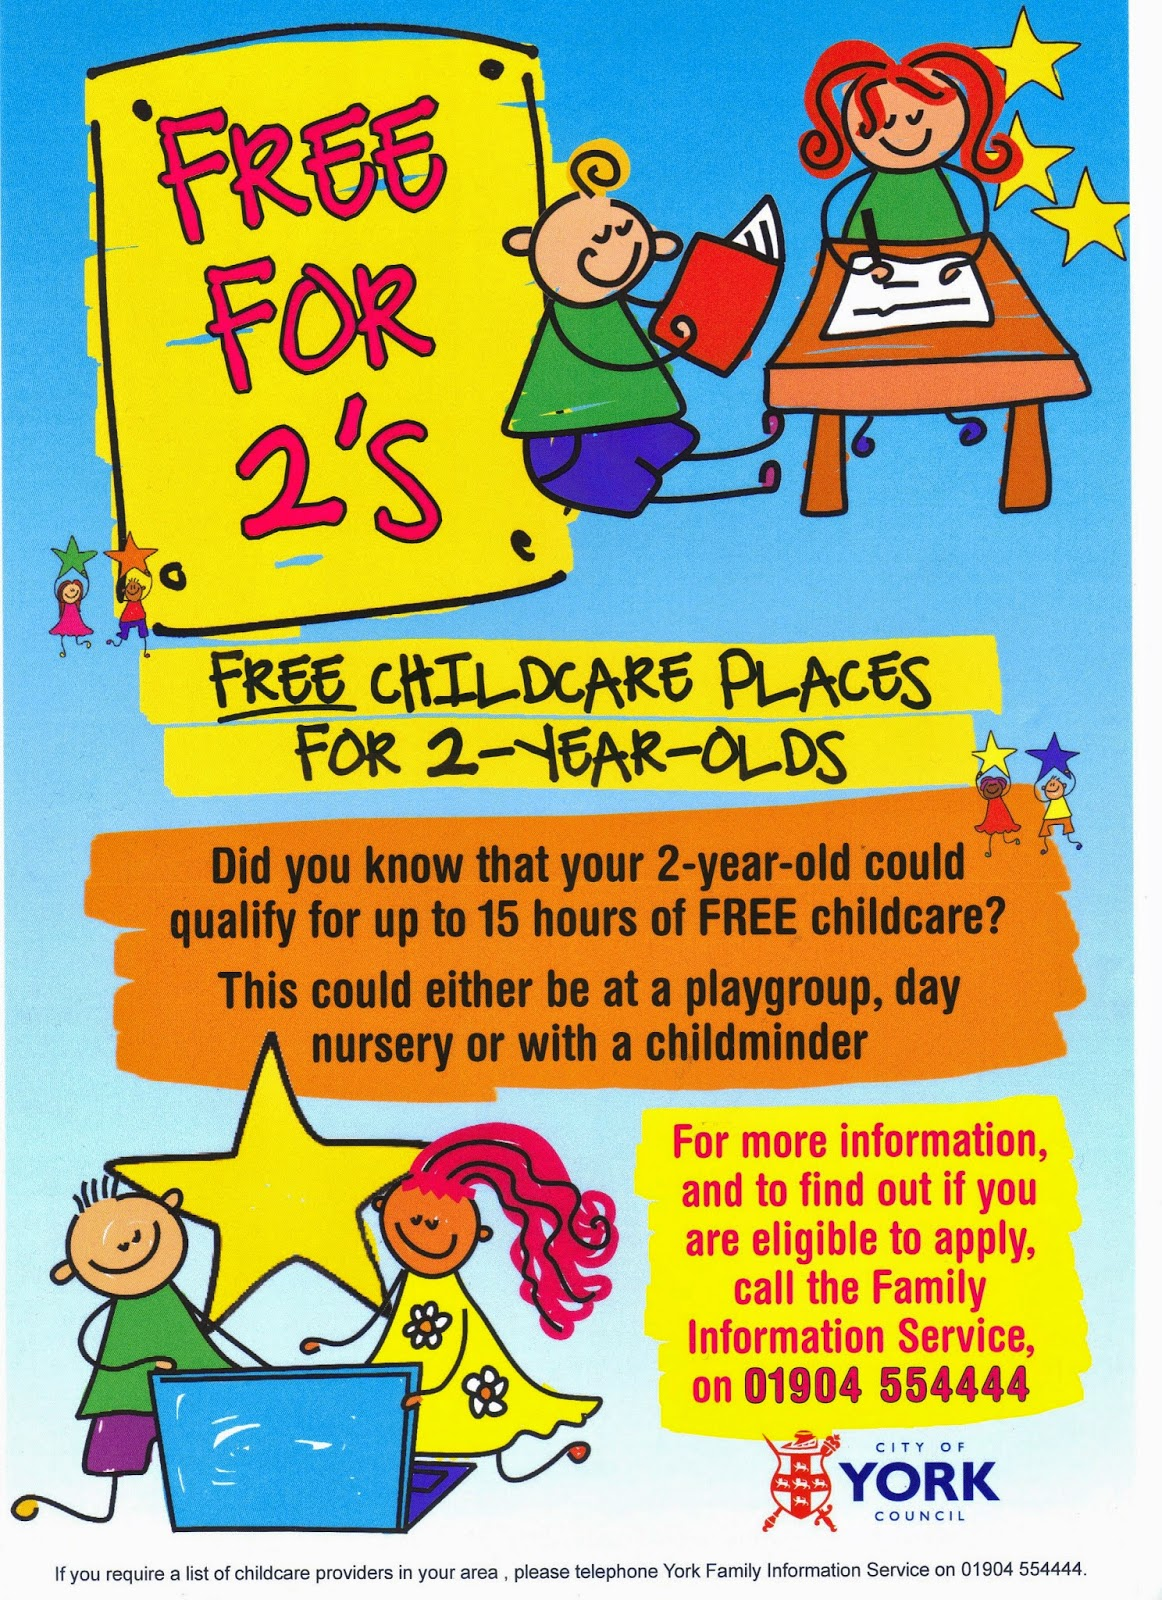 free childcare places for 0 2 year olds